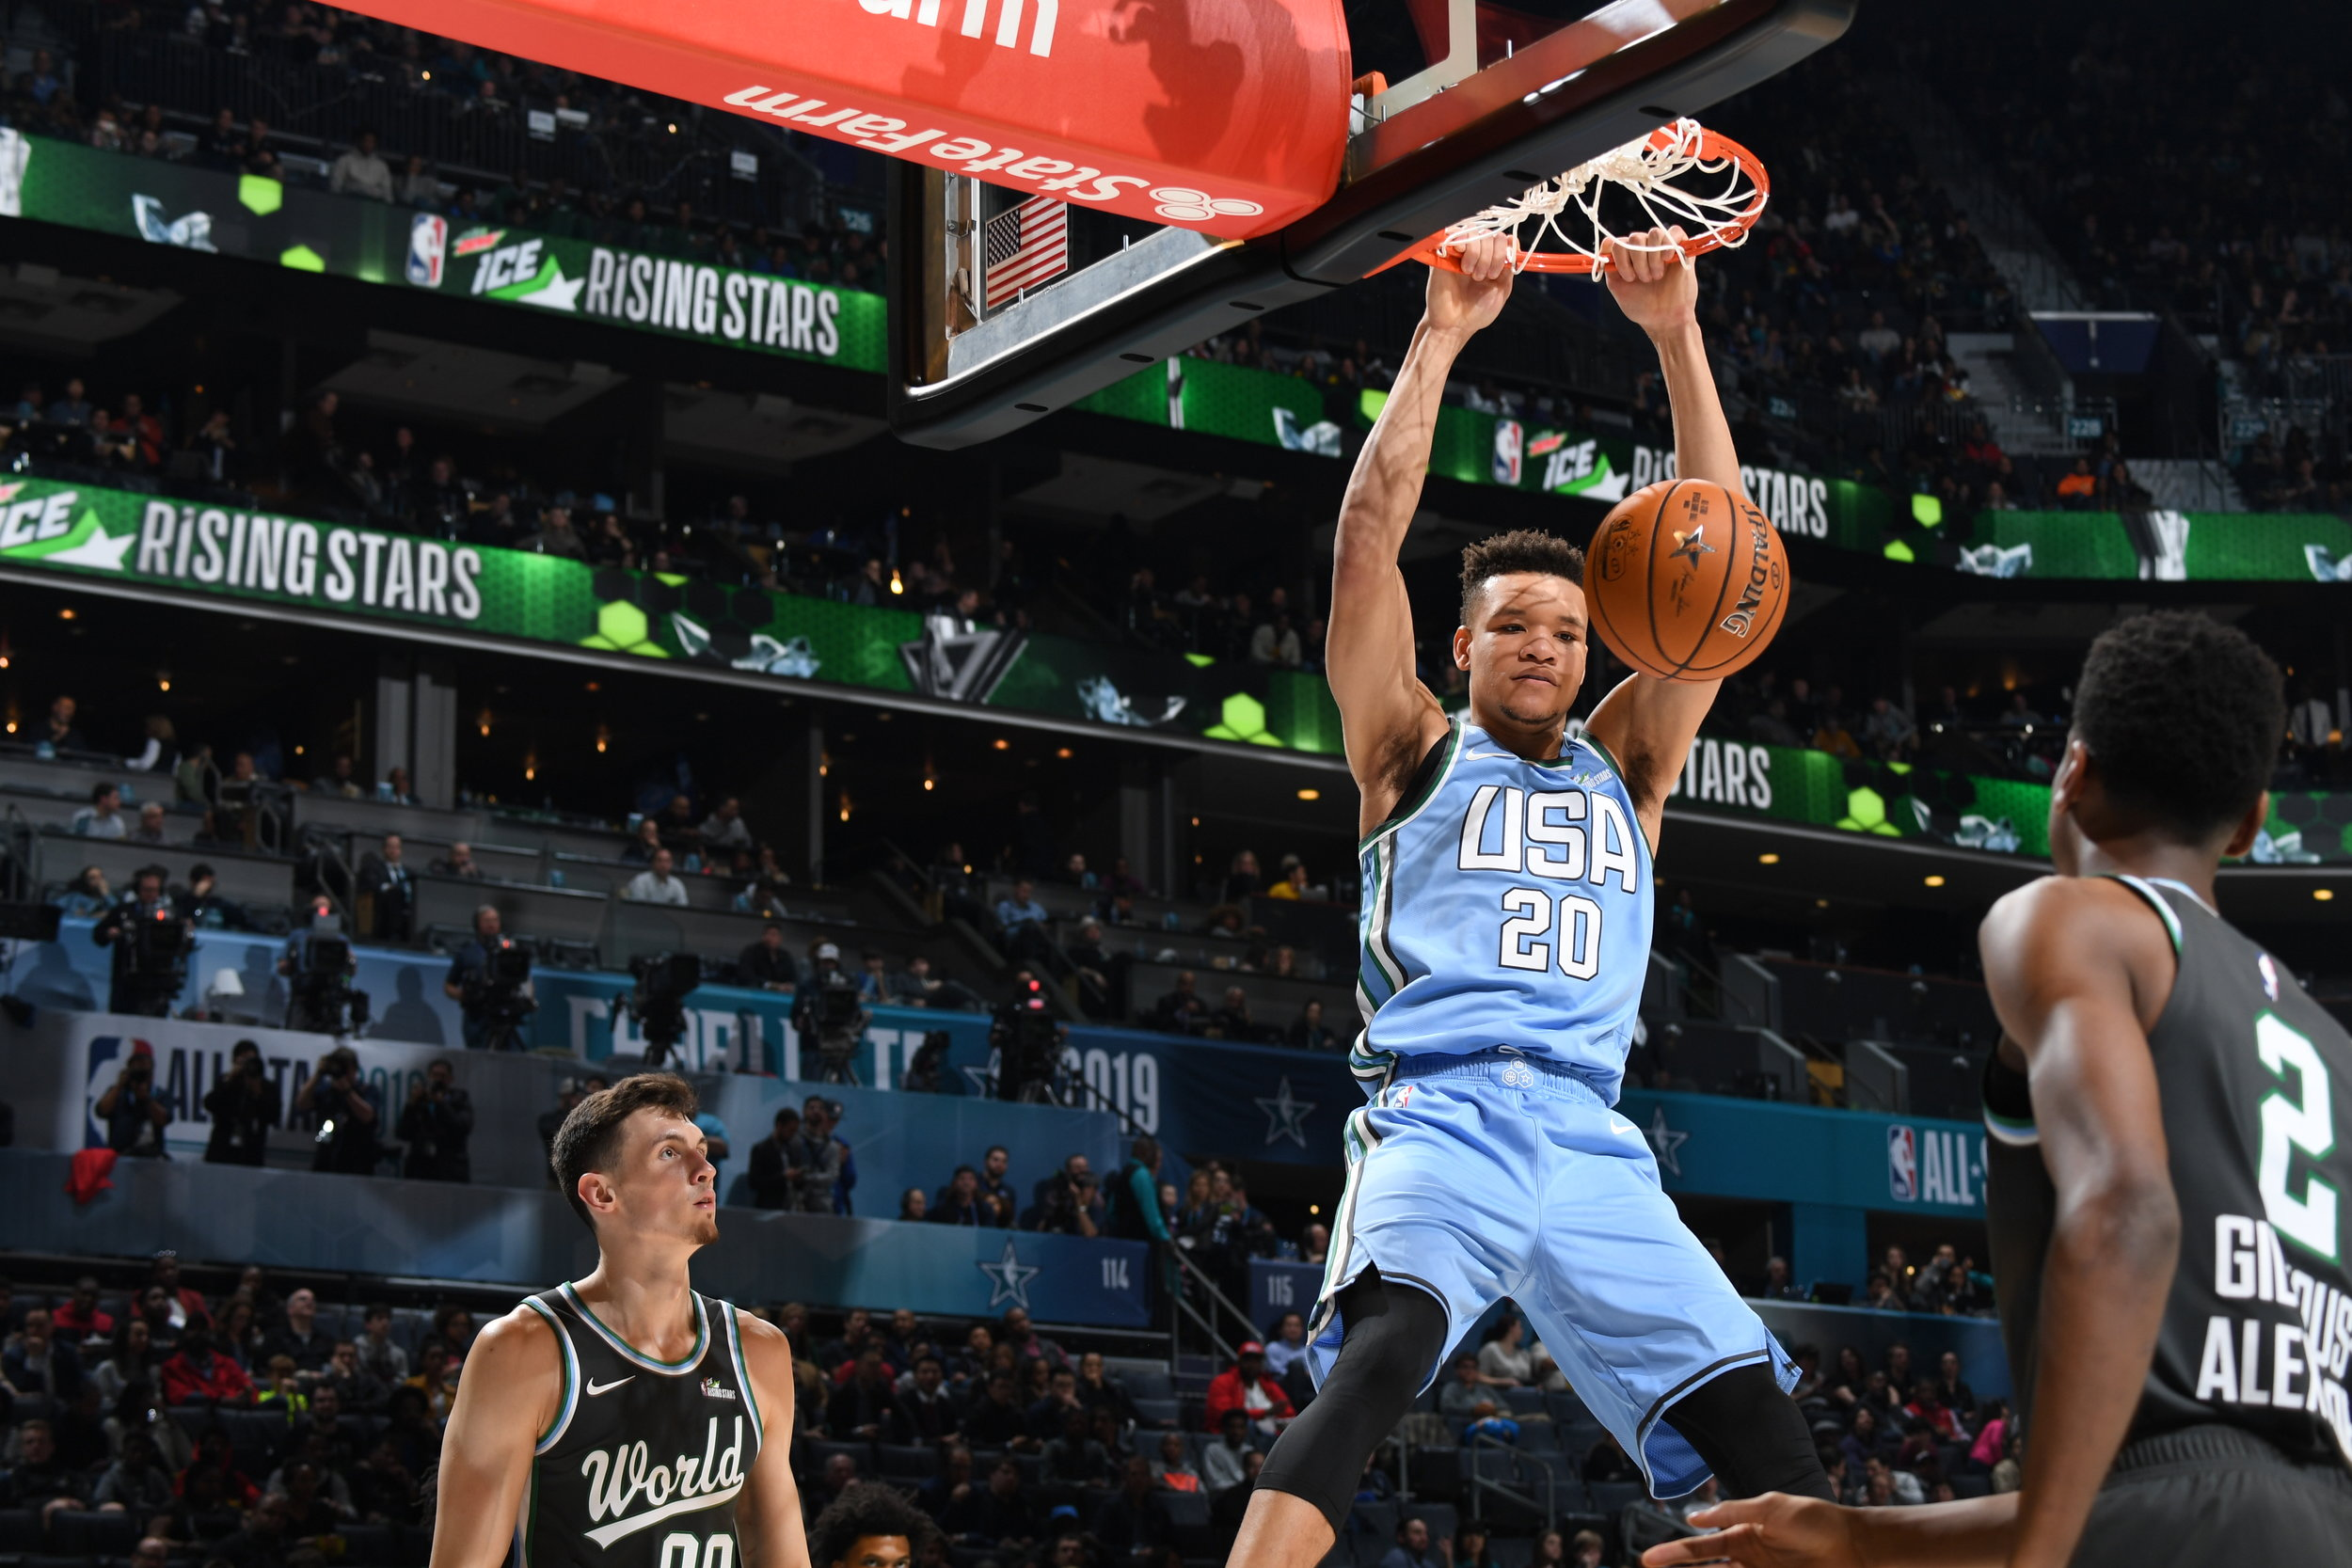 CHARLOTTE, NC - FEBRUARY 15:  during the 2019 Mtn Dew ICE Rising Stars Game on February 15, 2019 at the Spectrum Center in Charlotte, North Carolina. NOTE TO USER: User expressly acknowledges and agrees that, by downloading and/or using this photograph, user is consenting to the terms and conditions of the Getty Images License Agreement. Mandatory Copyright Notice: Copyright 2019 NBAE (Photo by Andrew D. Bernstein/NBAE via Getty Images)